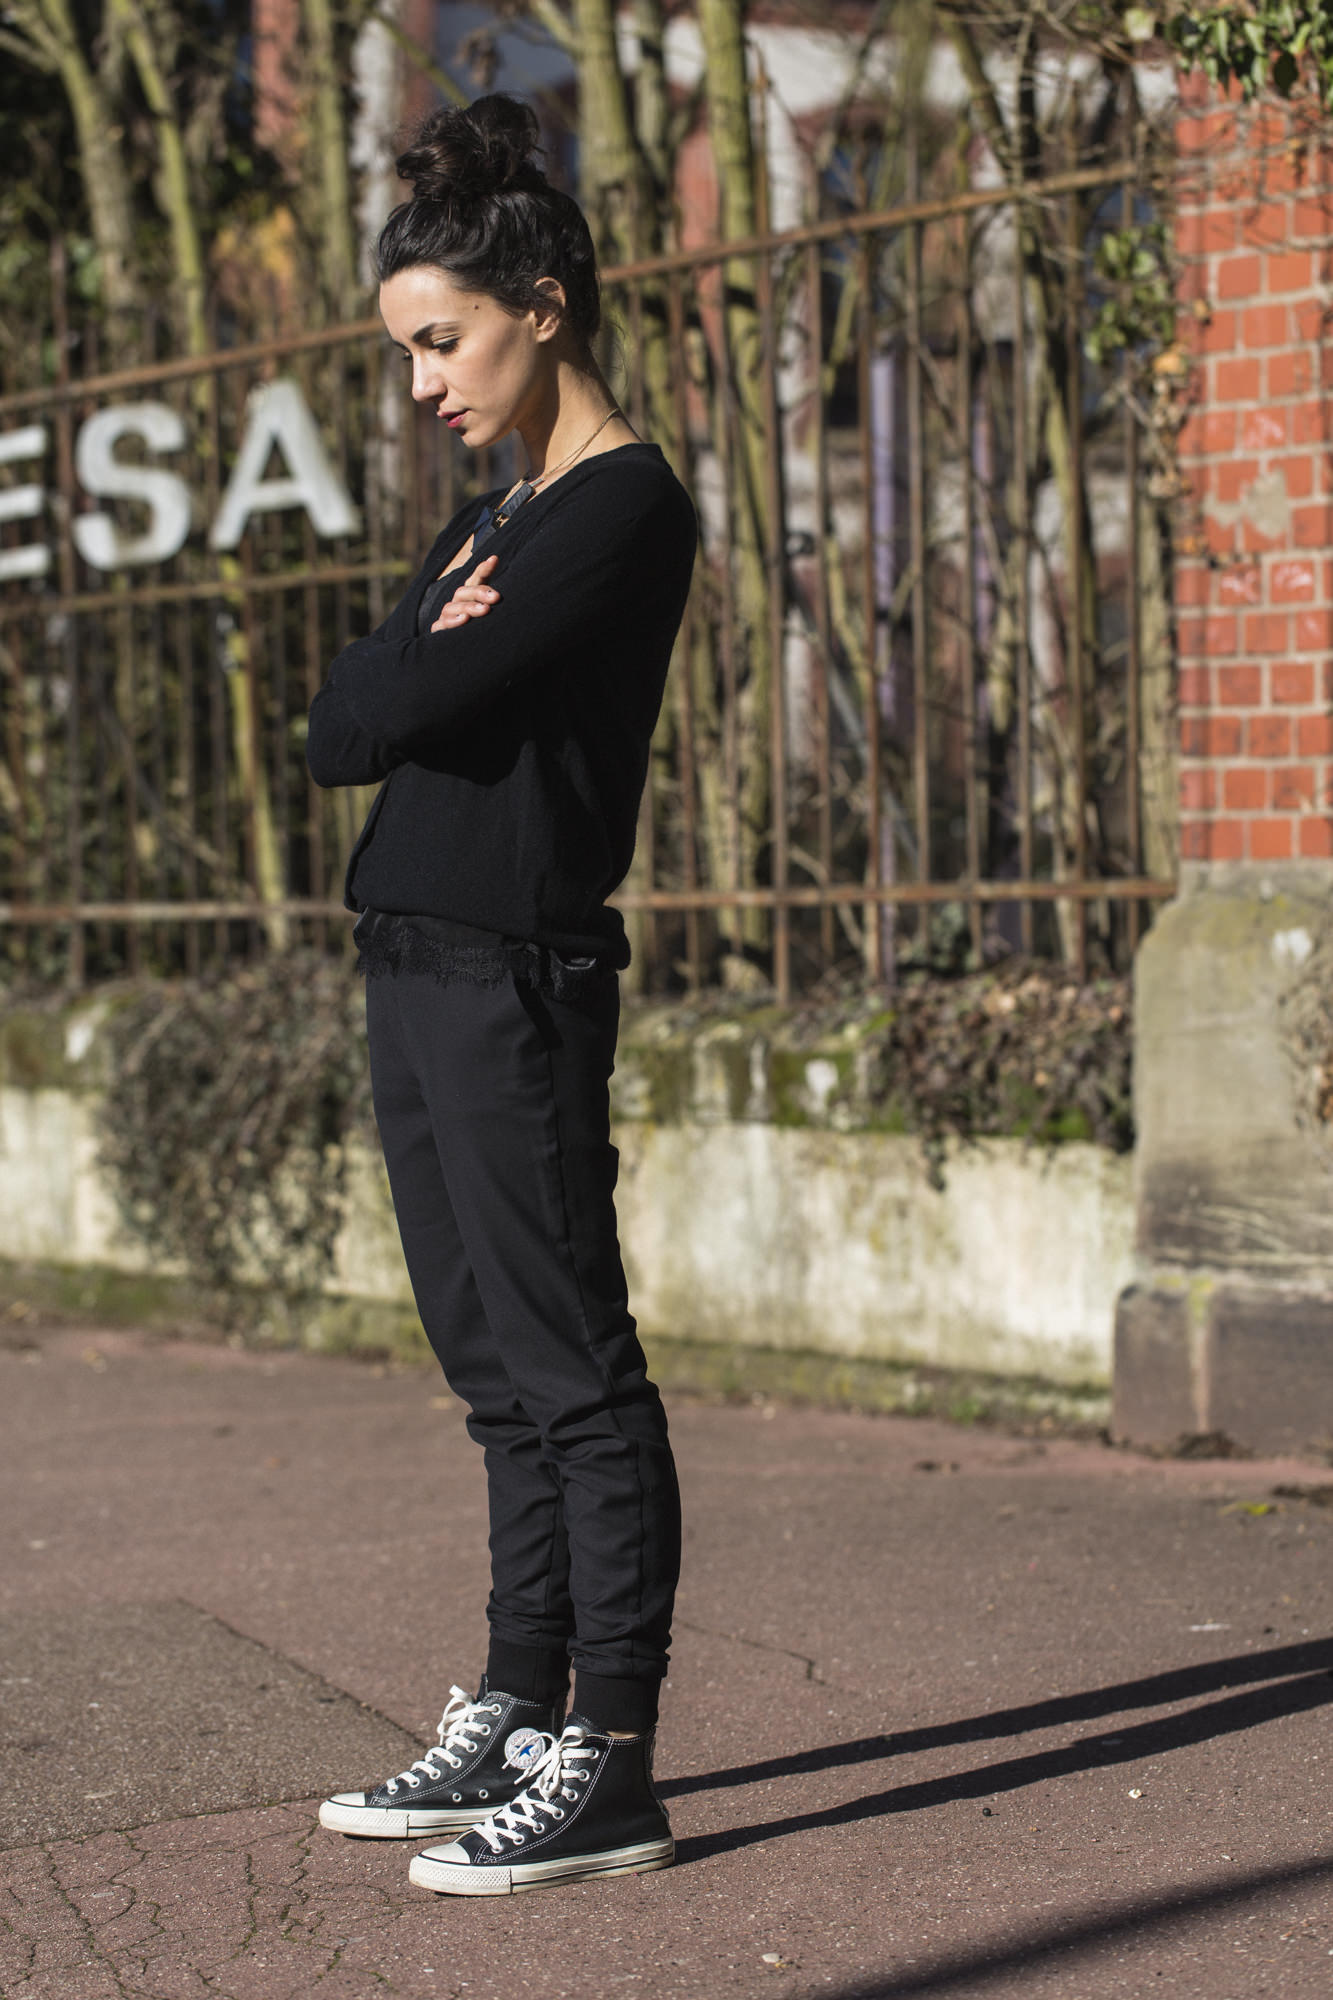 Wear classic black converse like Coline by pairing them with slouchy tomboy style trousers and a simple knit top. We love this androgynous jogger style. Jacket: Hunky Dory, Top: En Dentelle Vila, Trousers: Diesel, Shoes: Converse.